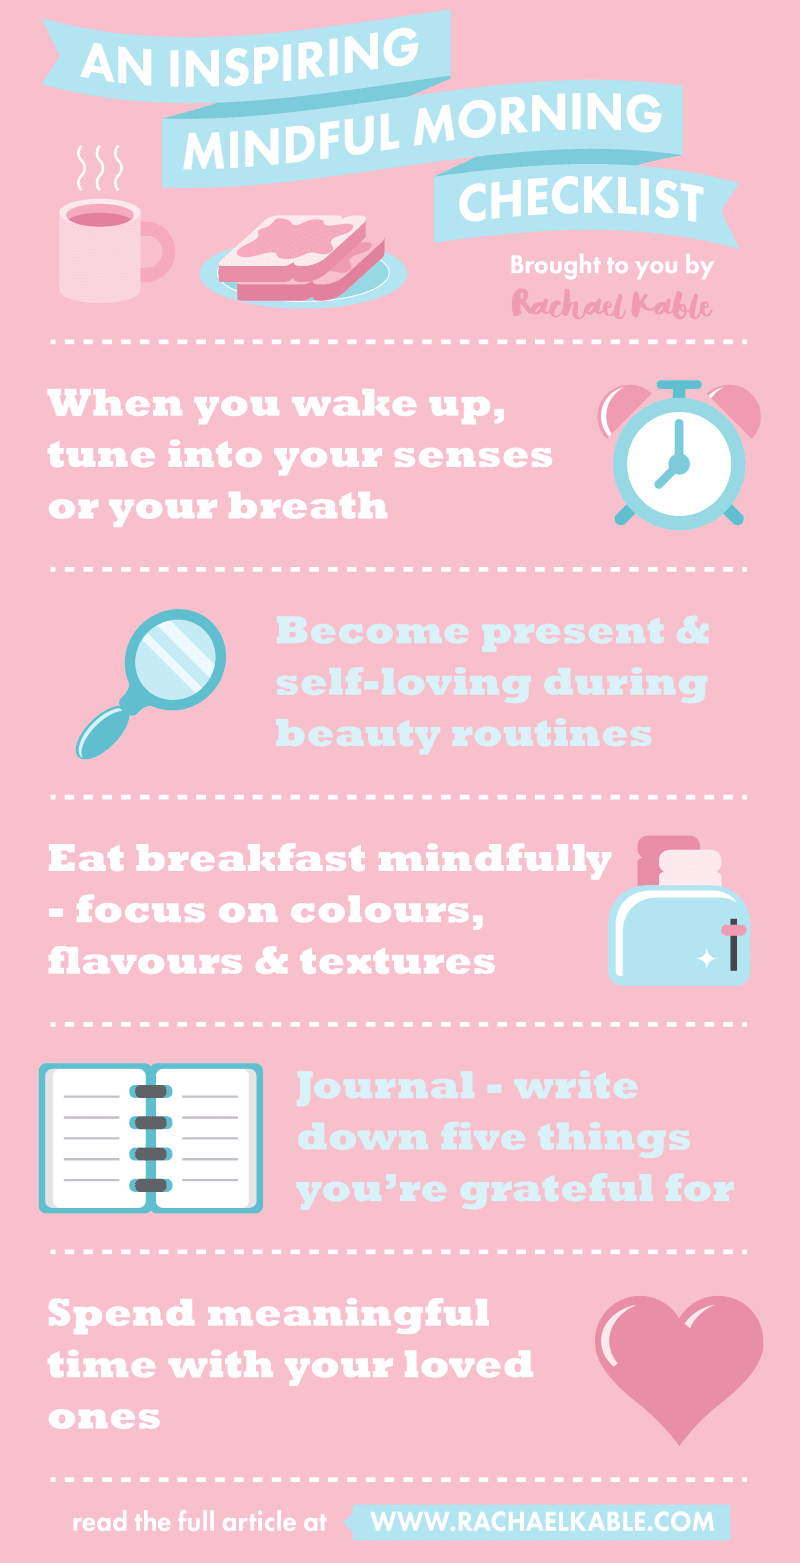 Mindful Morning Checklist